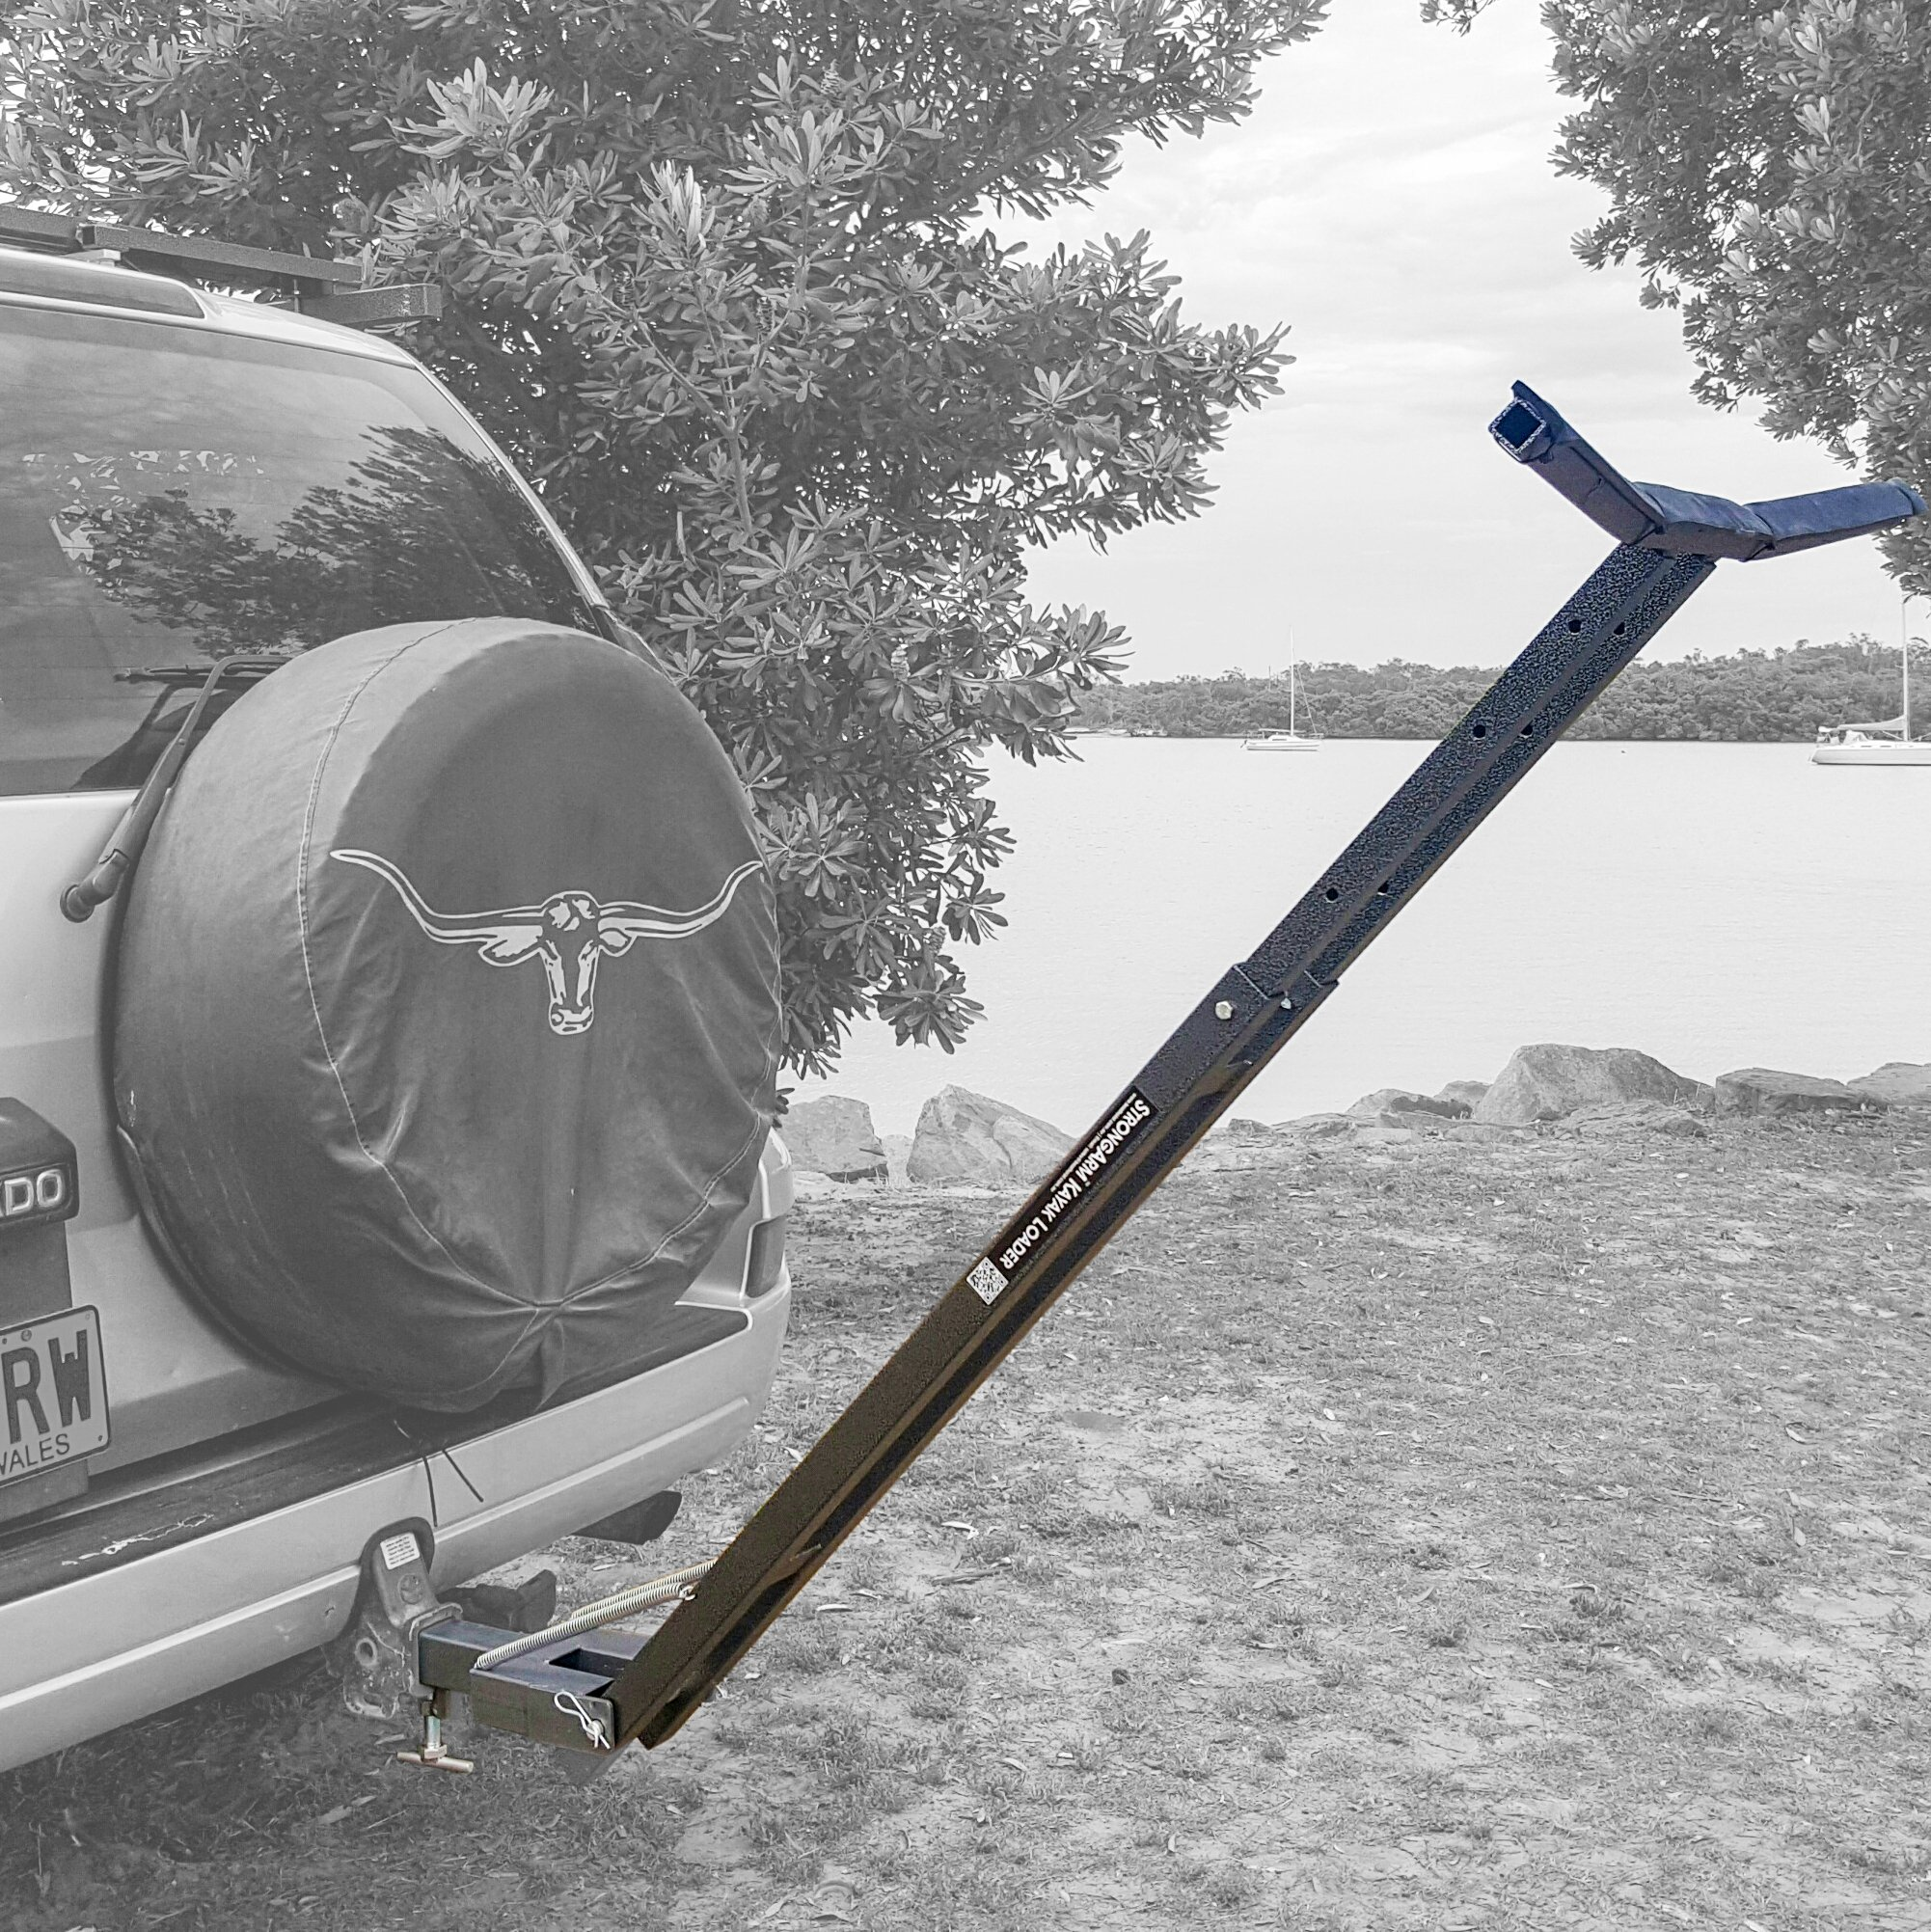 StrongArm Kayak Loader by Strong Arm